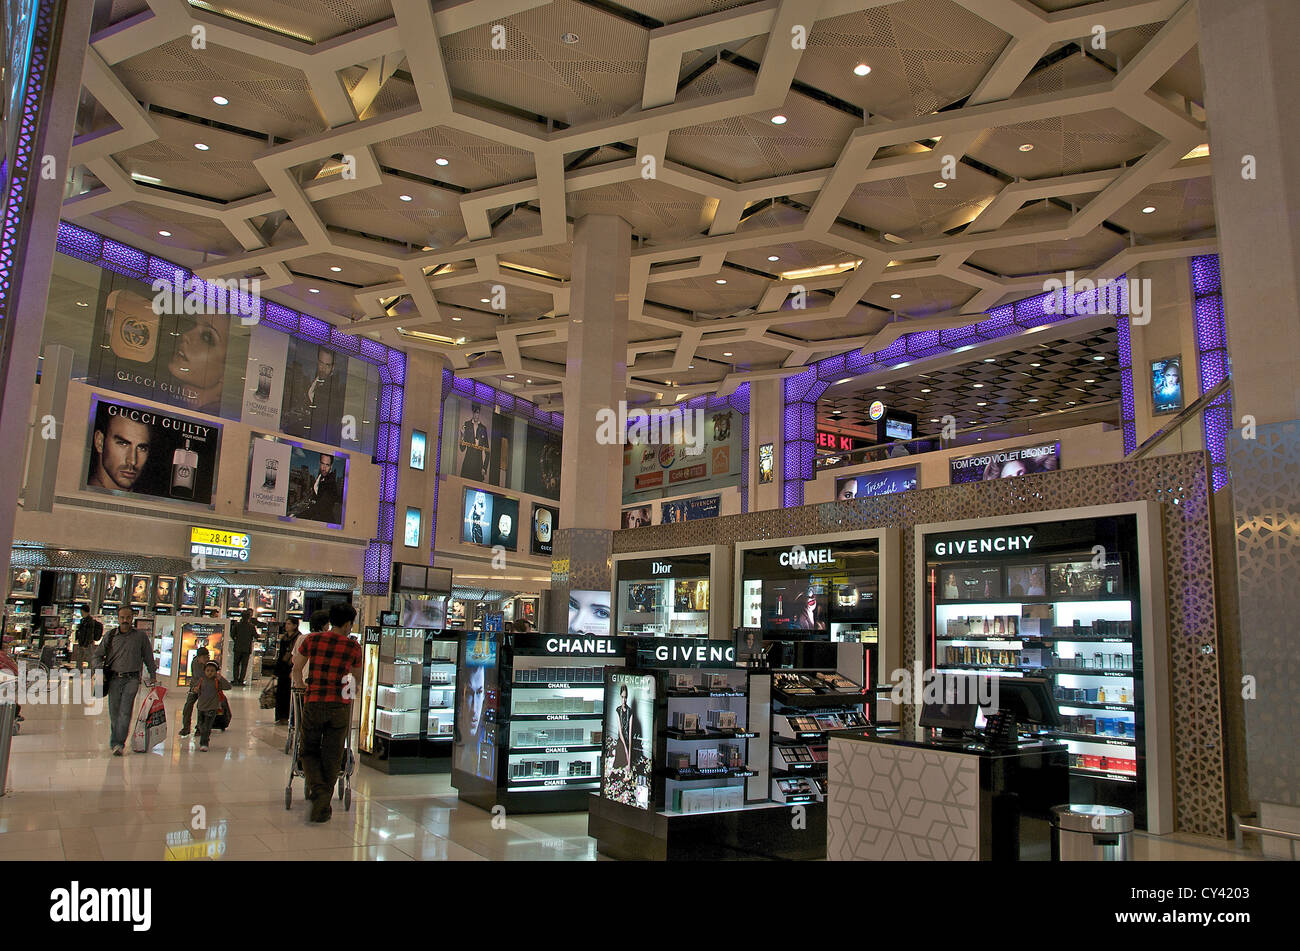 duty free shop abu dhabi international airport stock photo 51105827 alamy. Black Bedroom Furniture Sets. Home Design Ideas